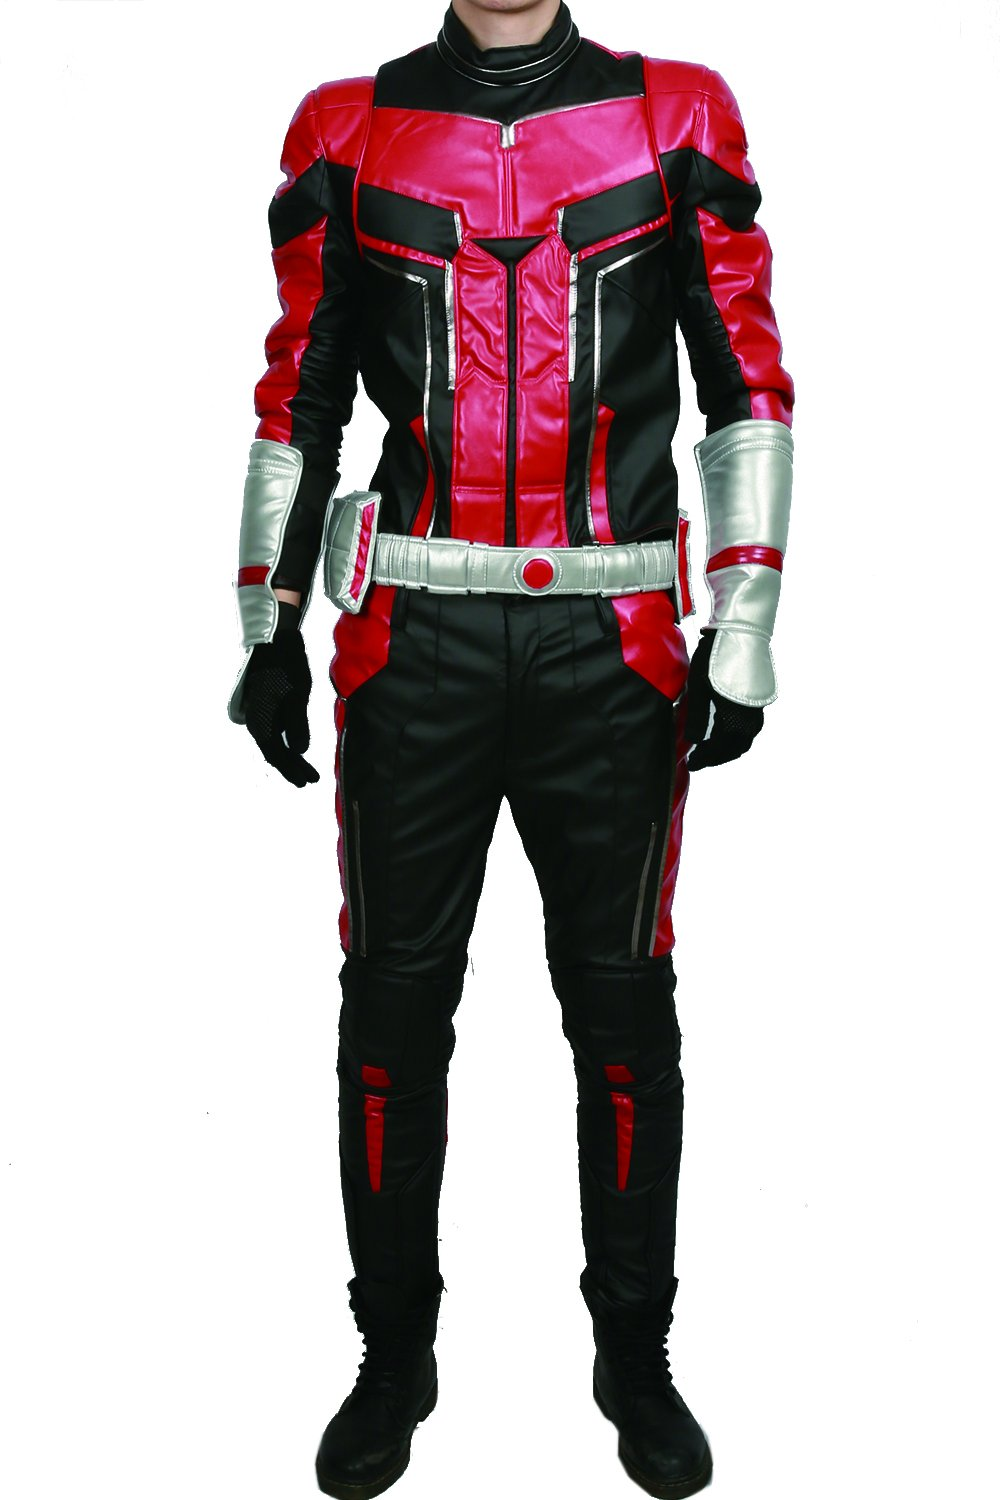 xcoser Ant Man Costume with Helmet Deluxe PU Cosplay Outfit Belt Gloves Full Suit Halloween Custom Made by xcoser (Image #2)